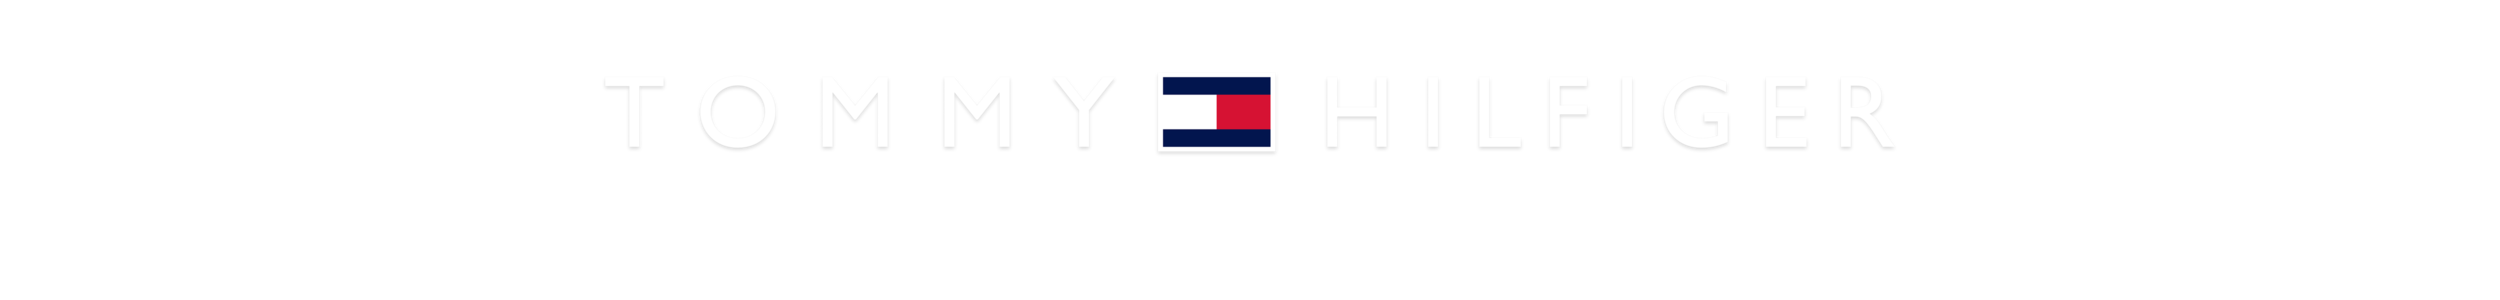 TommyHilfiger_5.png